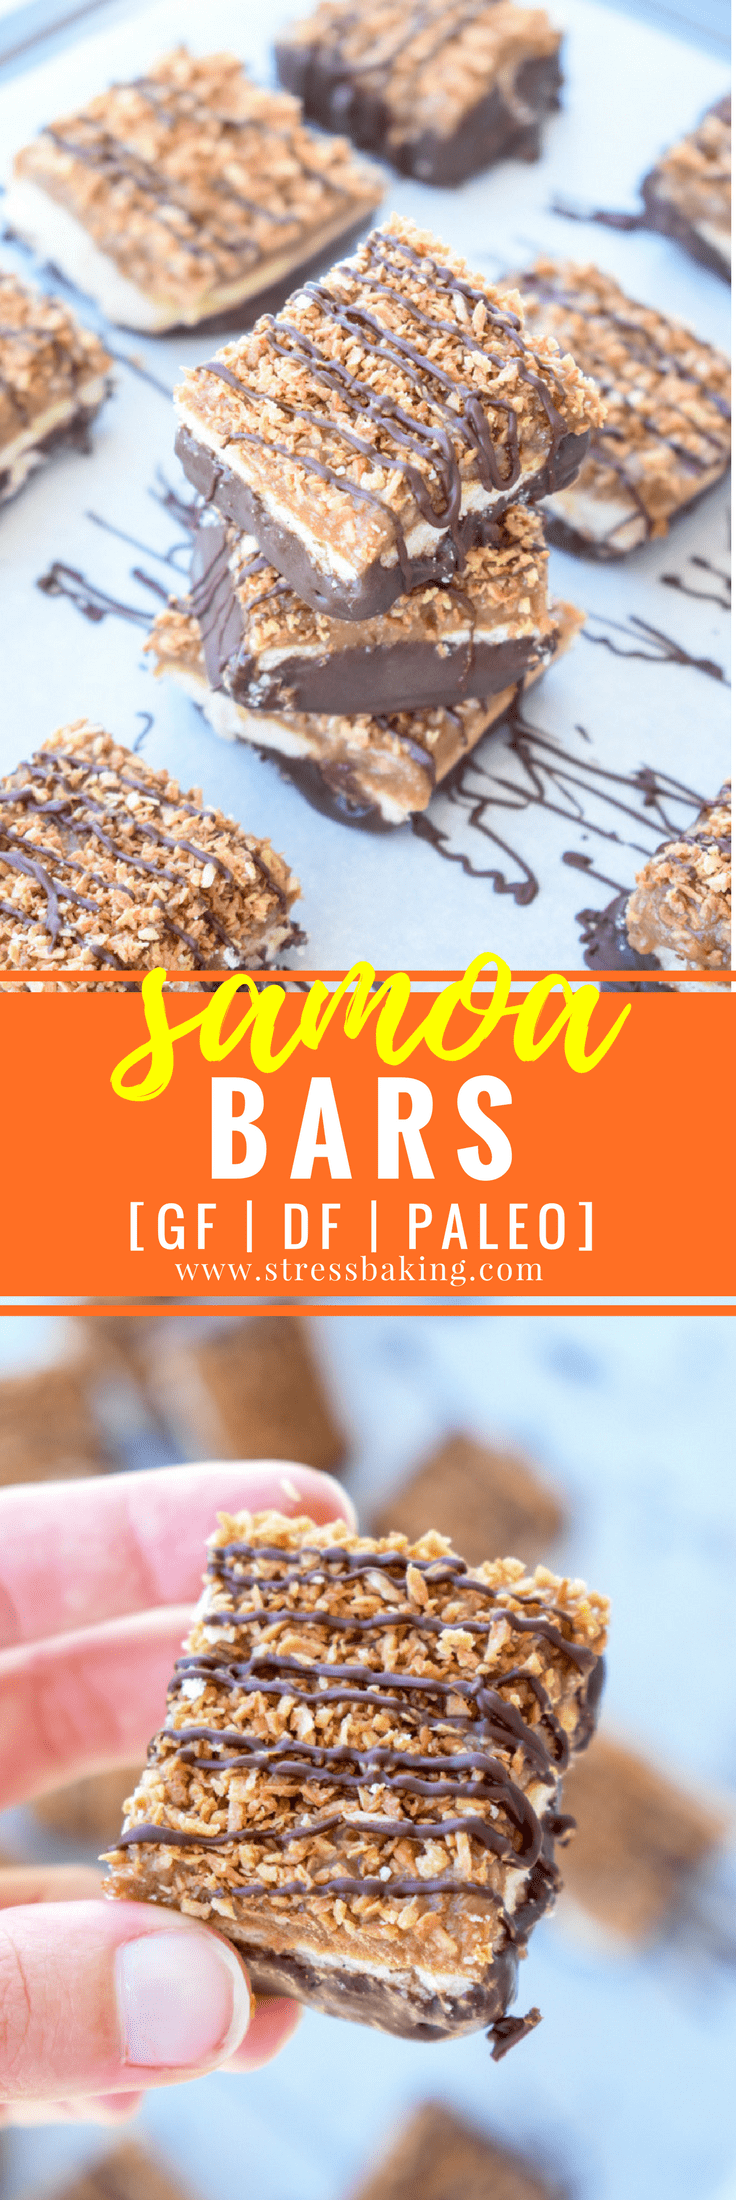 Paleo Samoa Bars: Soft shortbread, gooey caramel, and toasted coconut are dipped in chocolate and topped with a chocolate drizzle. Paleo, gluten free and dairy free! | stressbaking.com